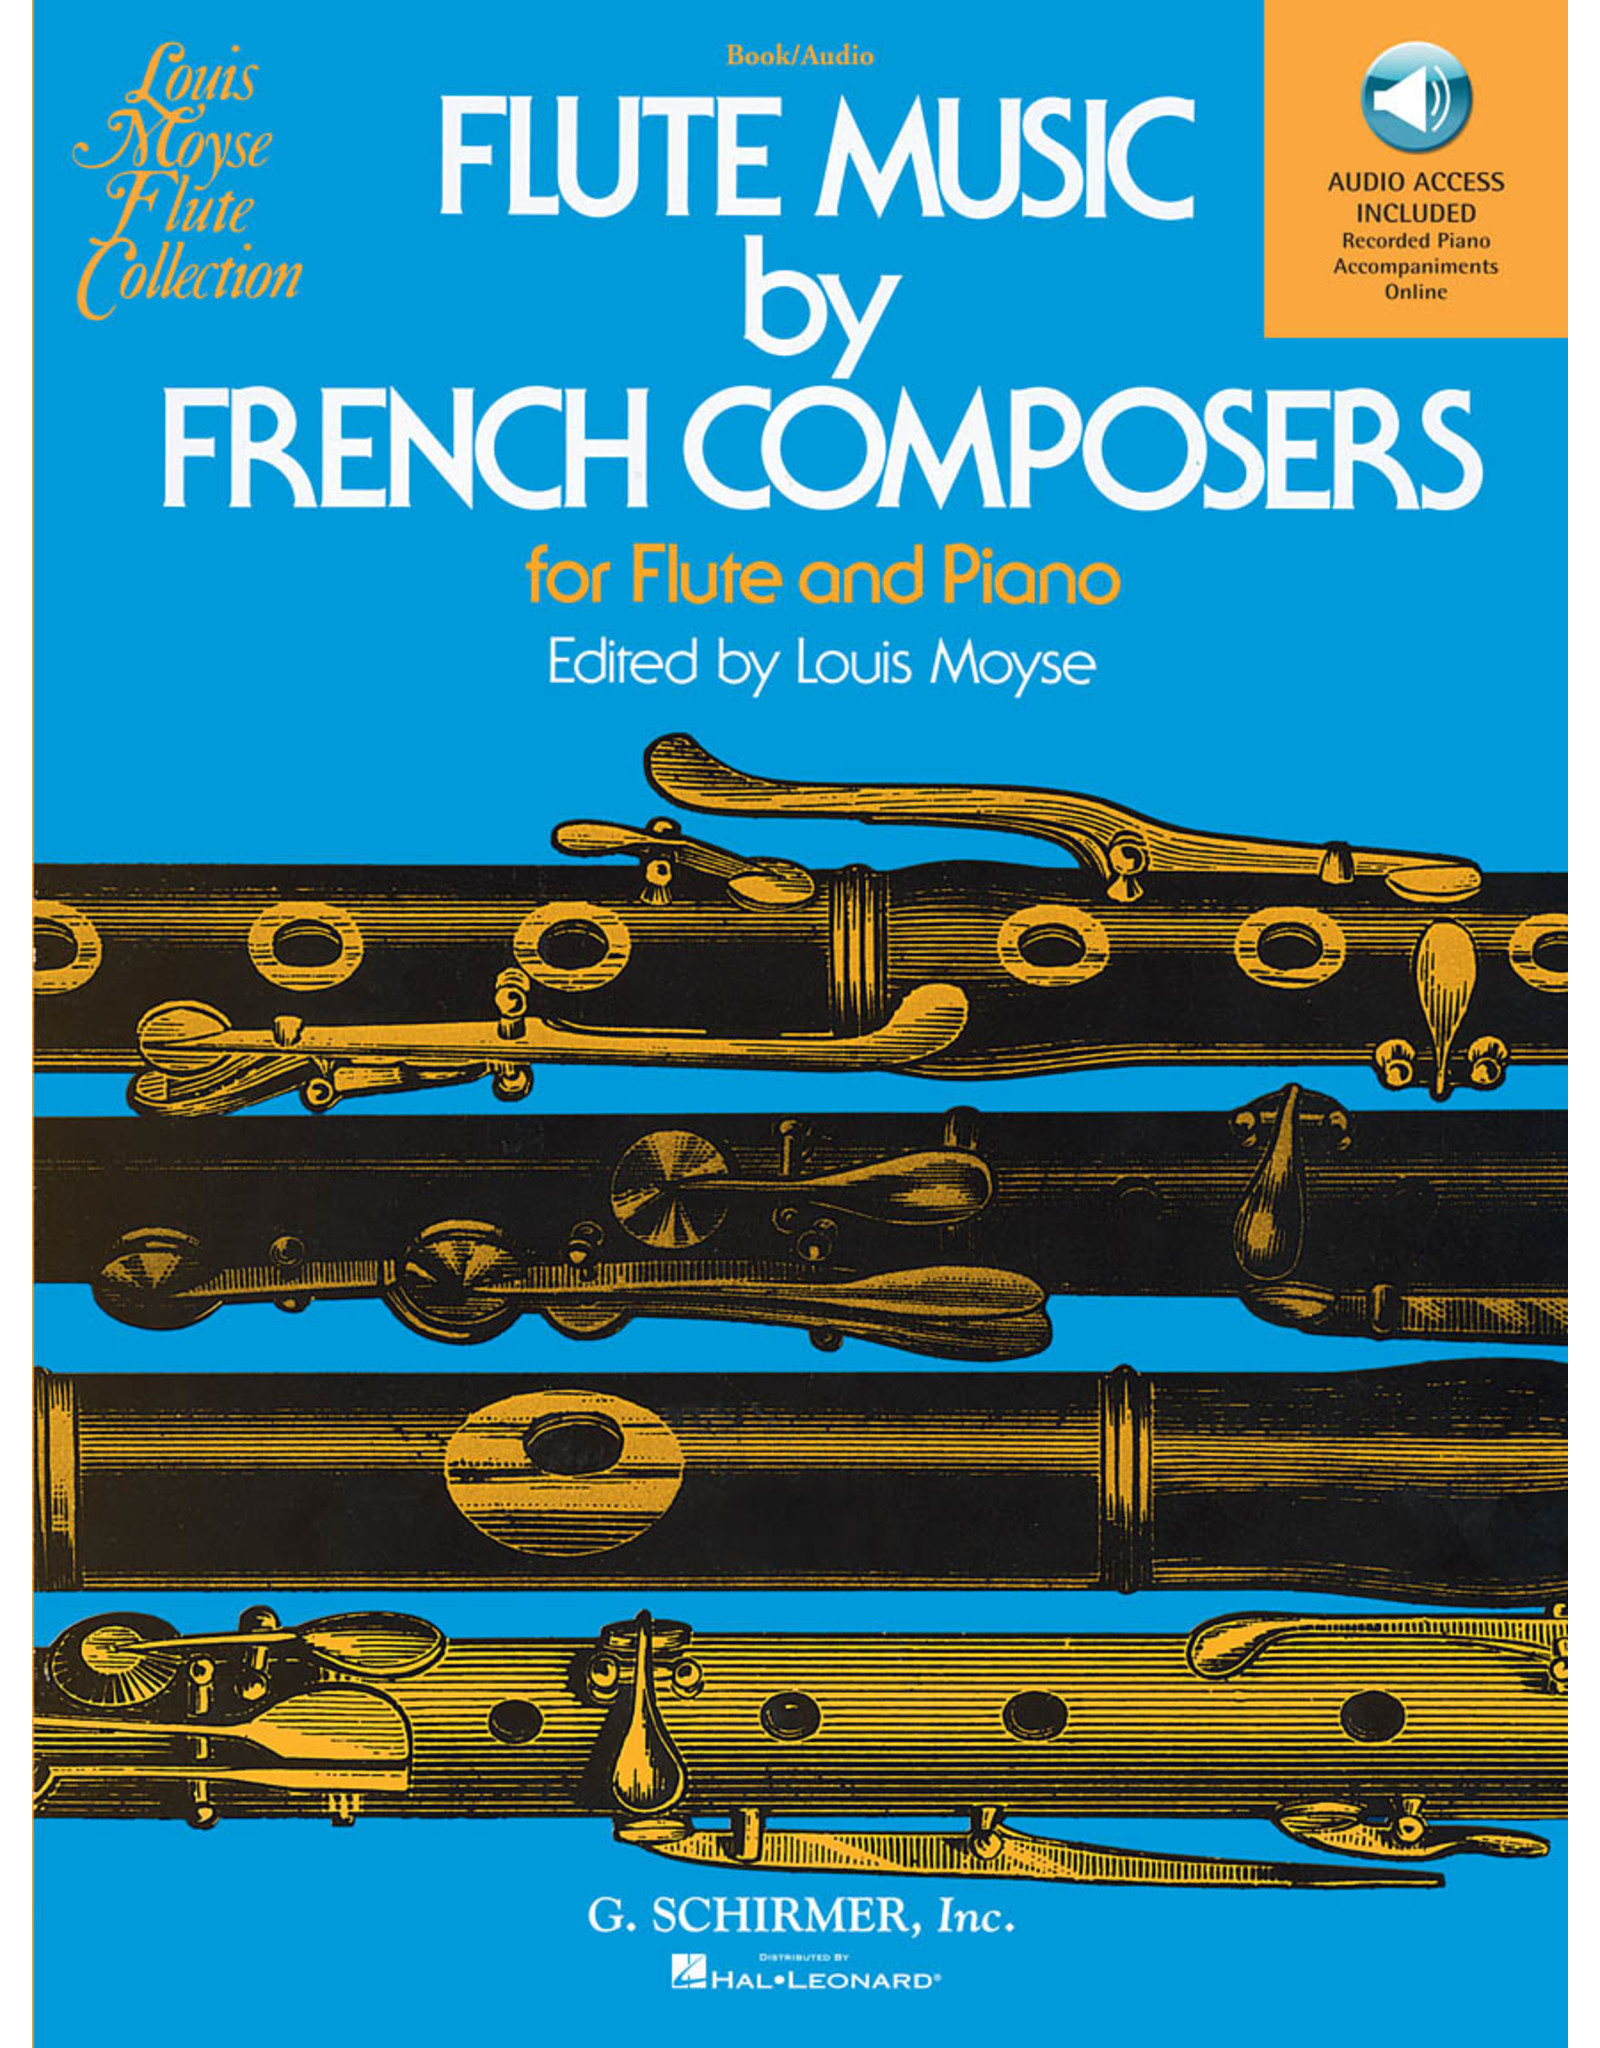 G. Schirmer, Inc. Flute Music by French Composers for Flute & Piano edited by Louis Moyse Woodwind Solo